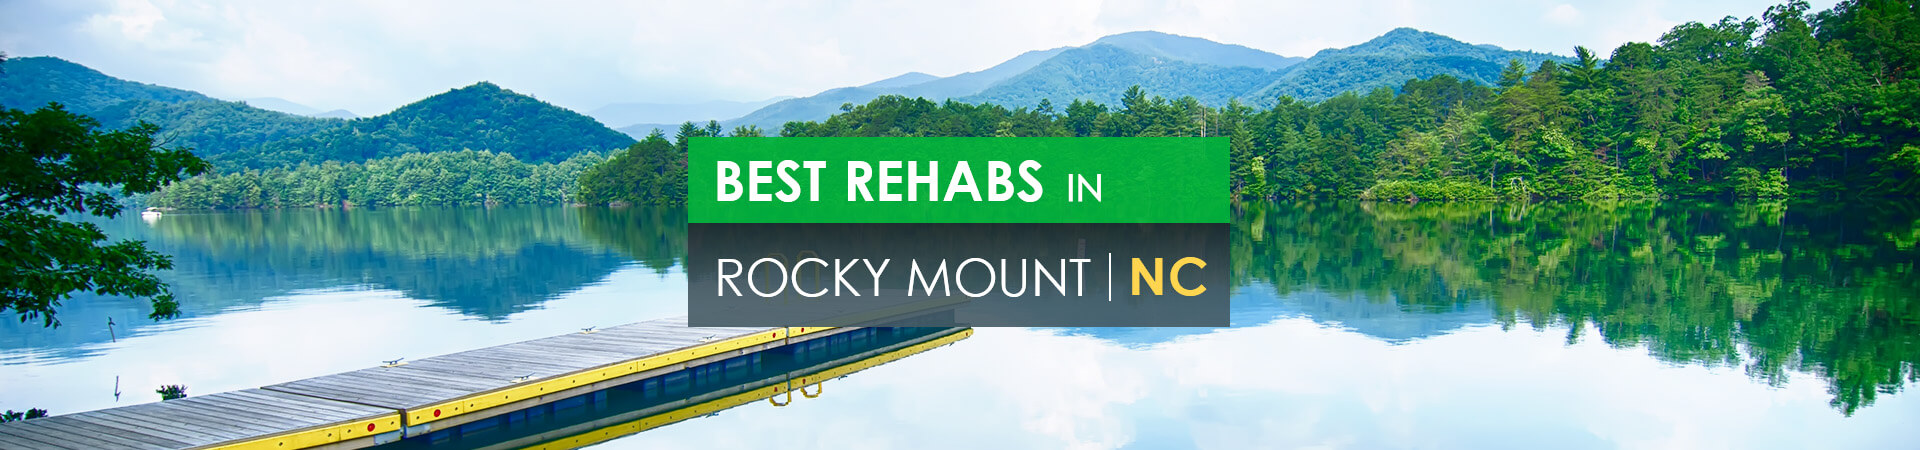 Best rehabs in Rocky Mount, NC